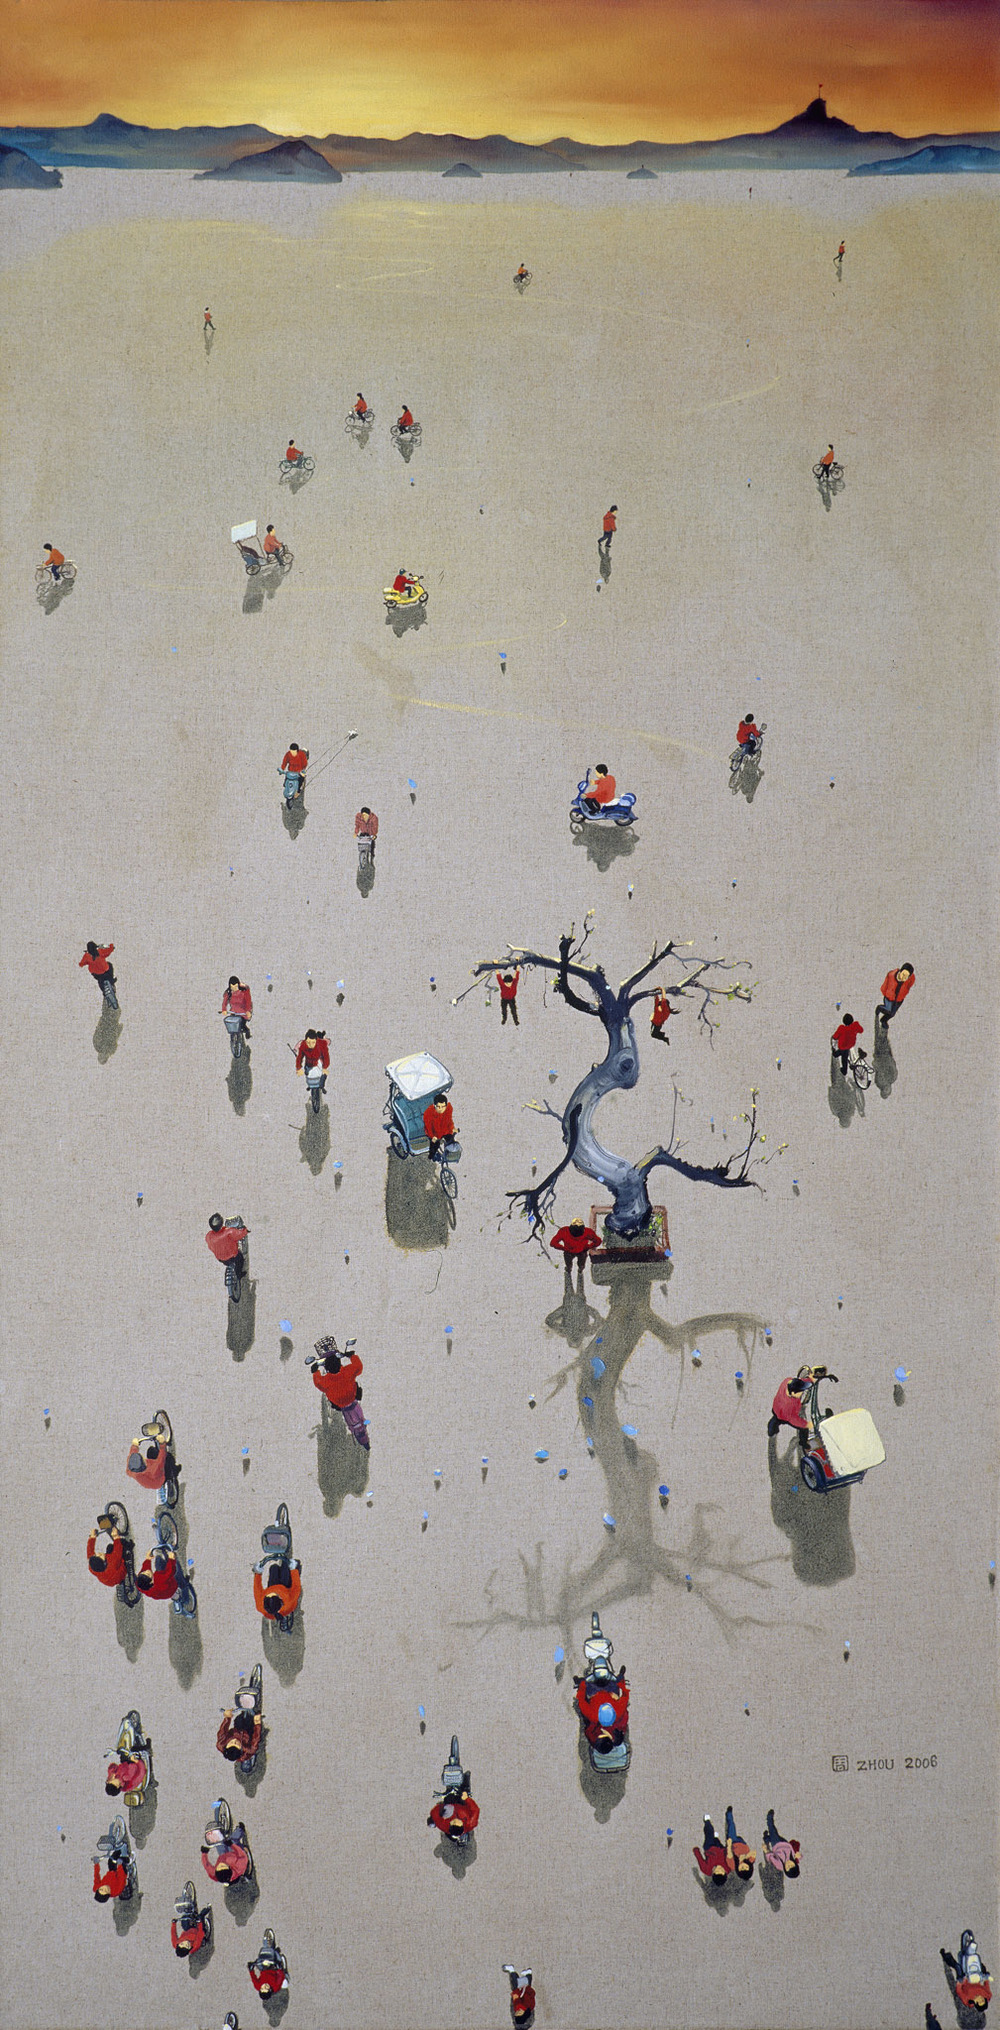 Zhou Jinhua 周金华, In the Evening No.8 人在黄昏 No.8, 2006, Oil on canvas 布面油画, 150 x 75 cm